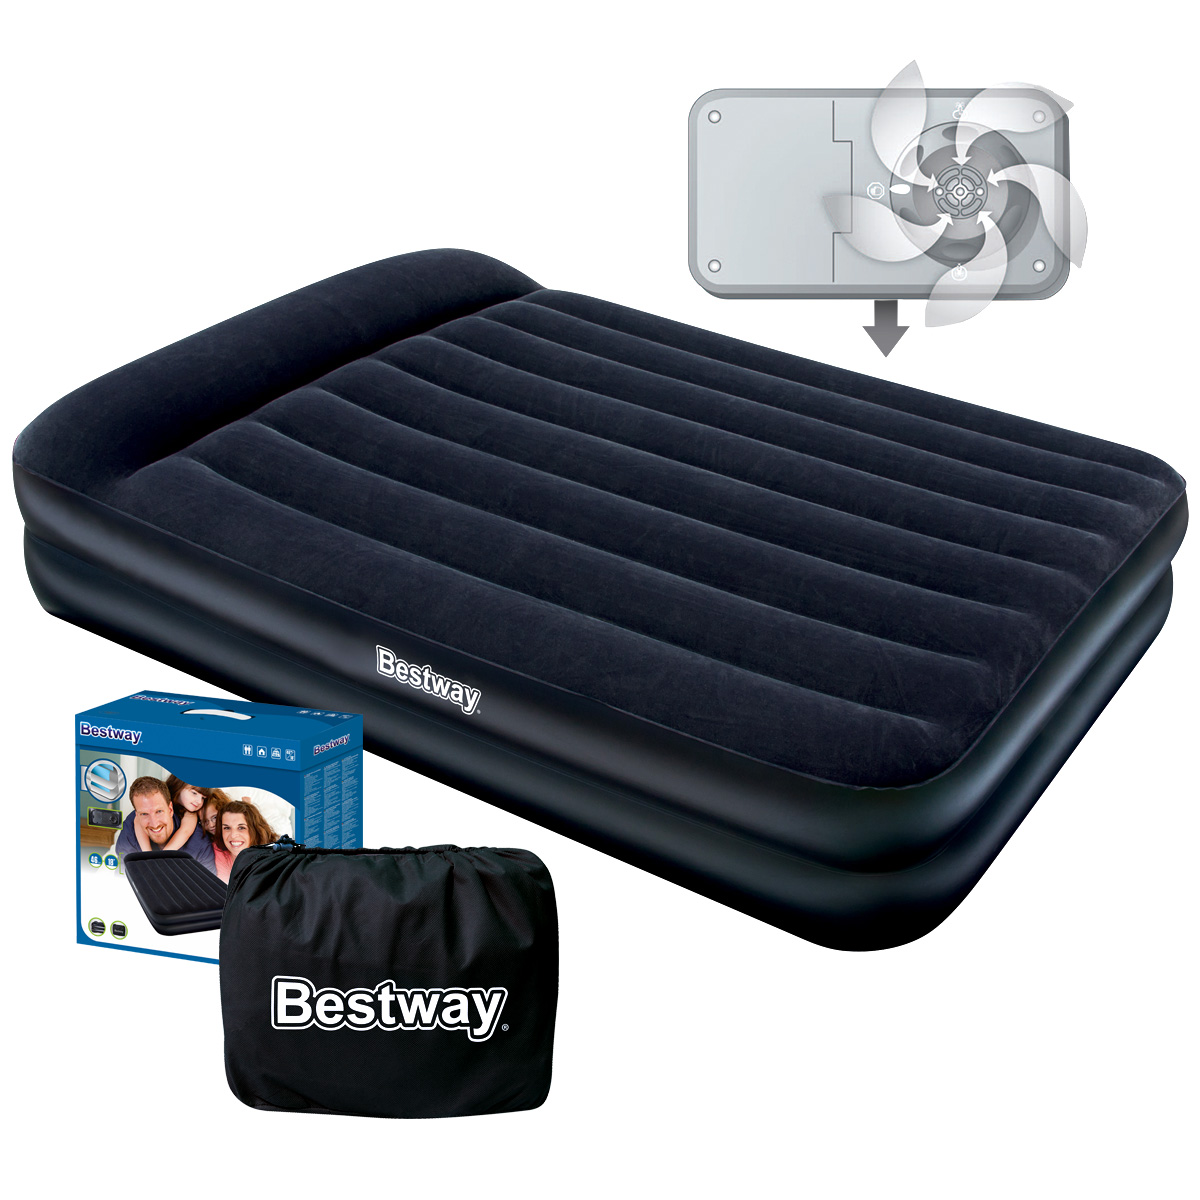 Bestway Queen Size Luxury Inflatable Mattress Air Bed